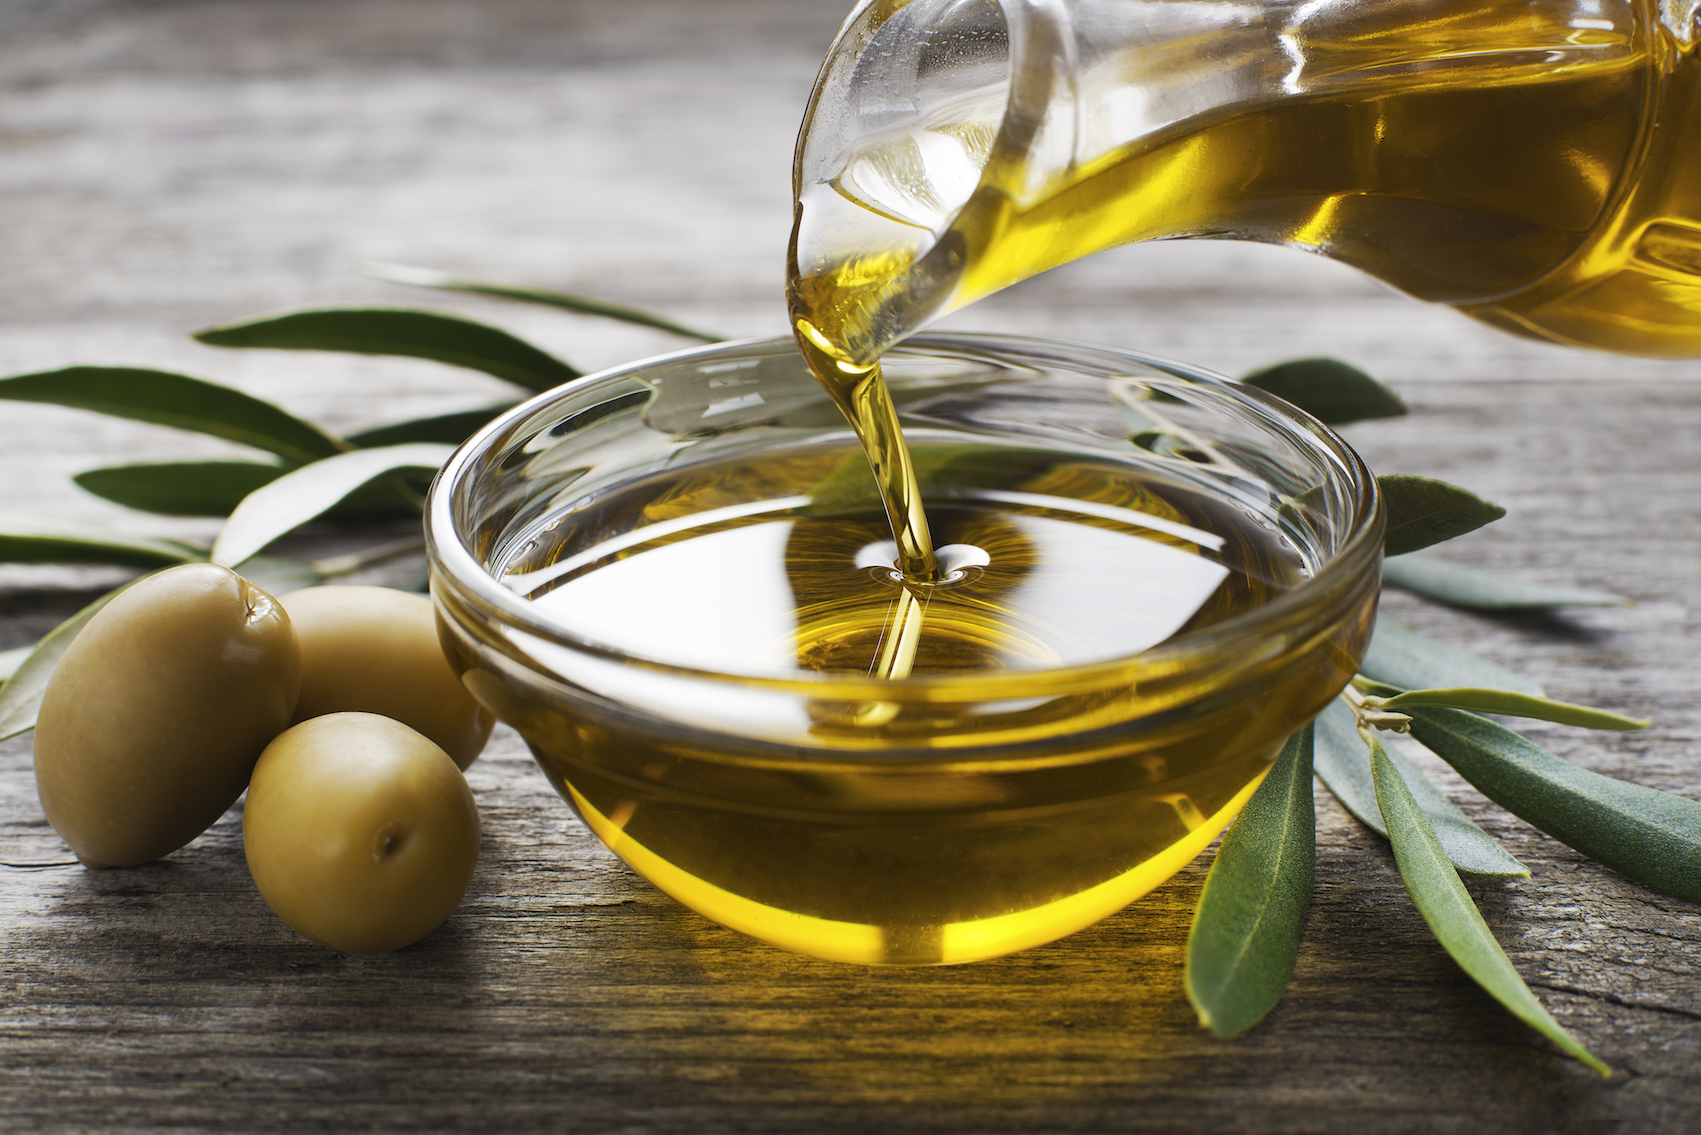 Researchers have found a possible link between extra-virgin olive oil consumption and protection against cognitive decline.